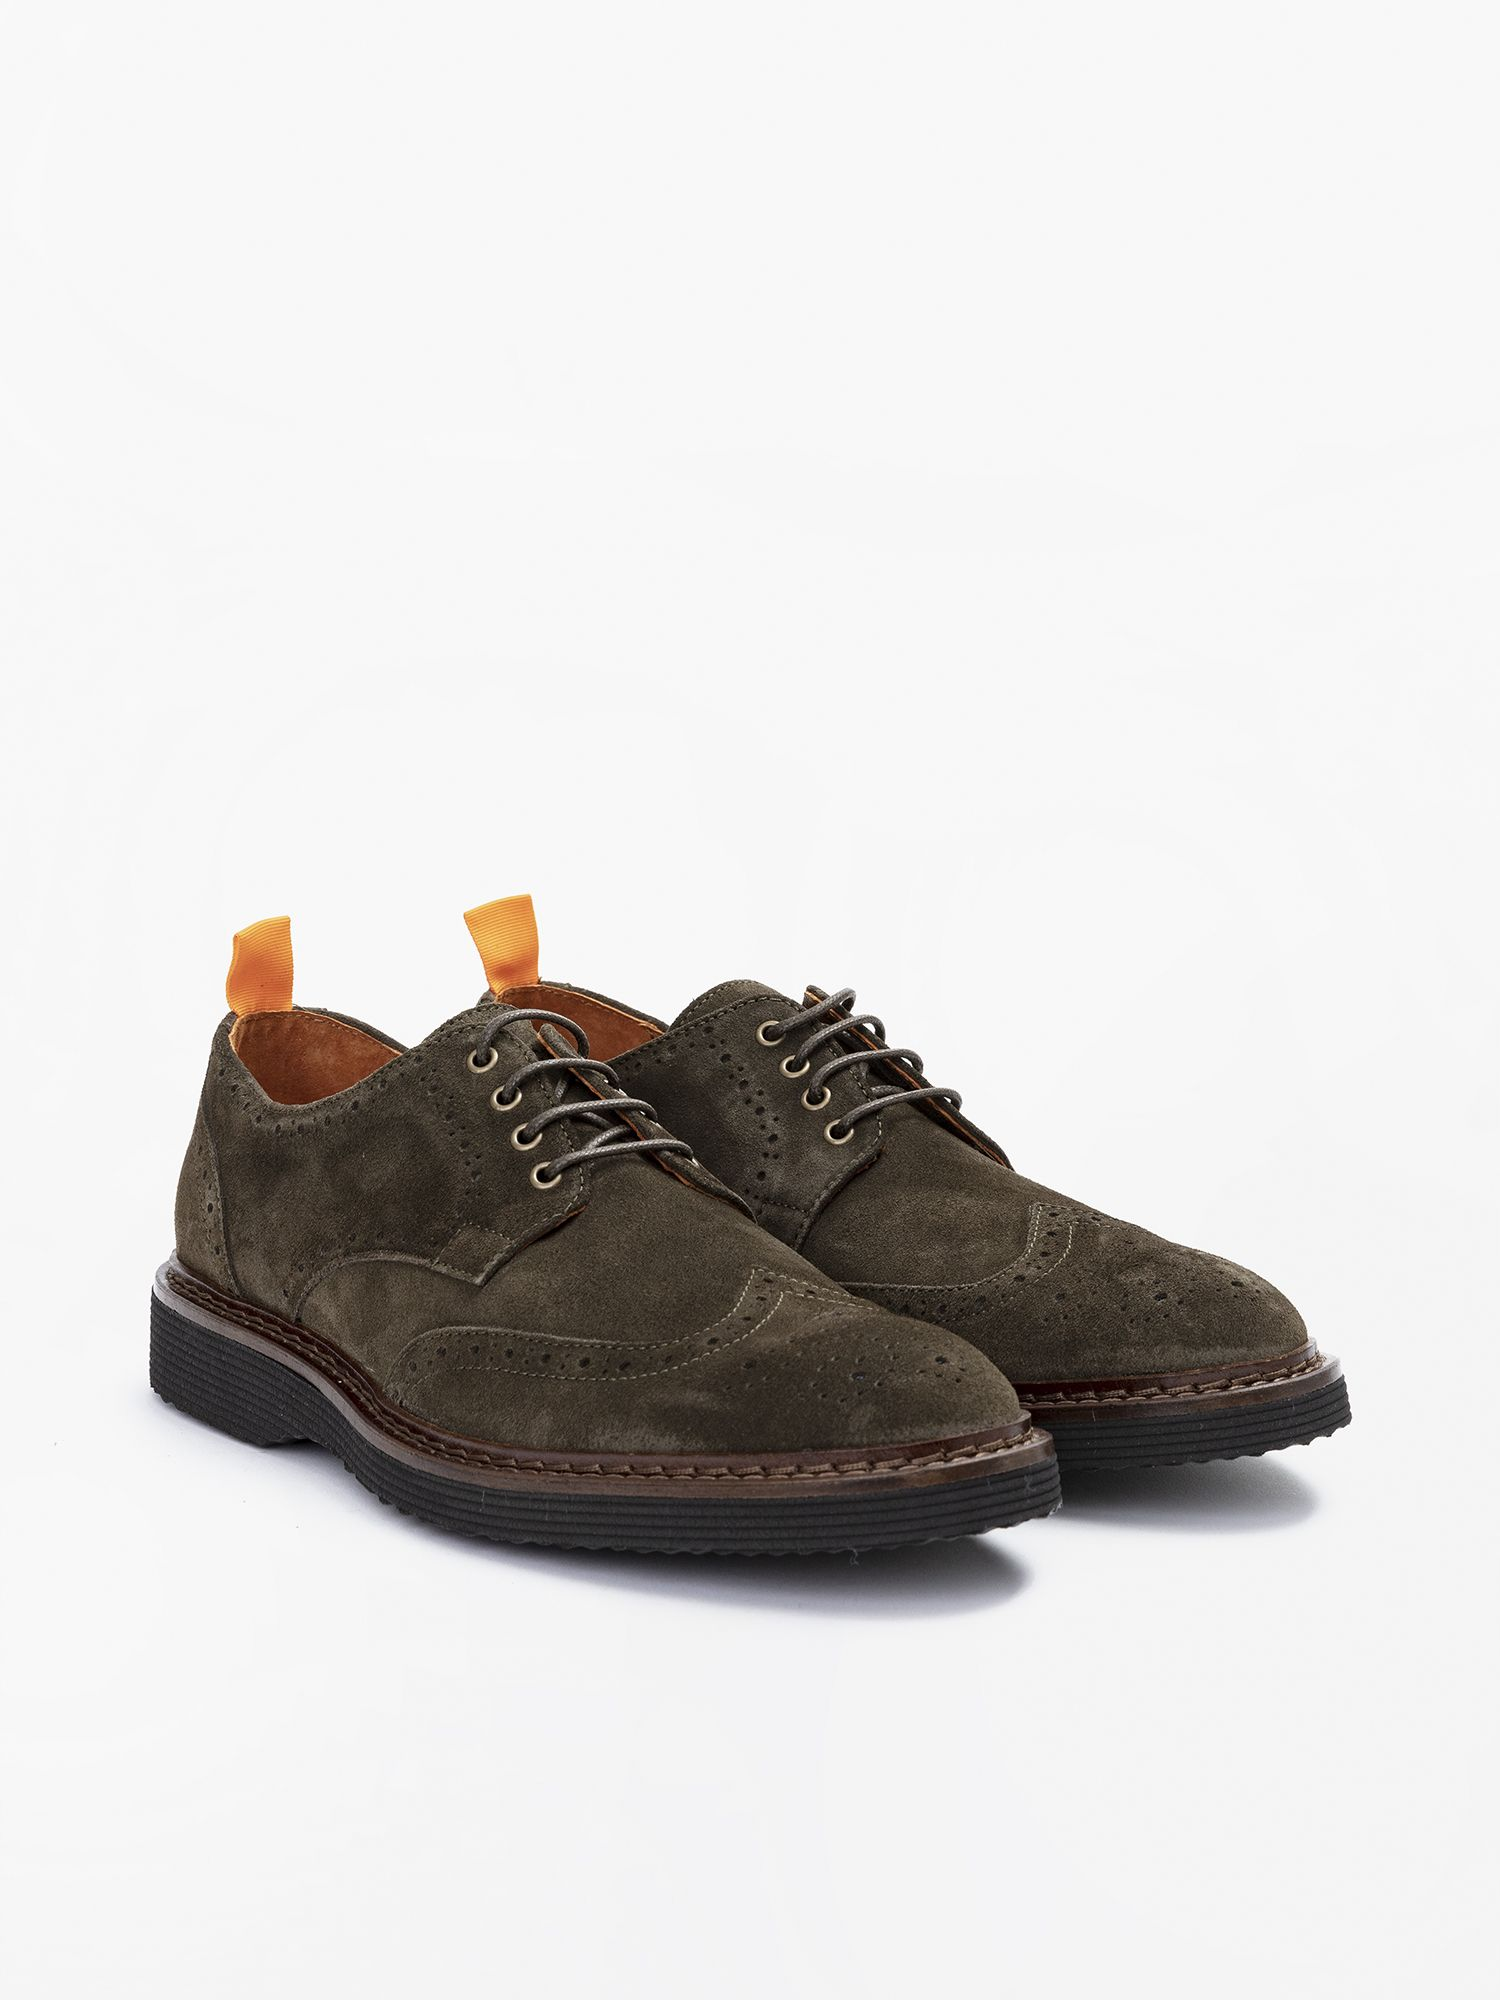 schmoove.fr Mora Perfo - Suede - Olive